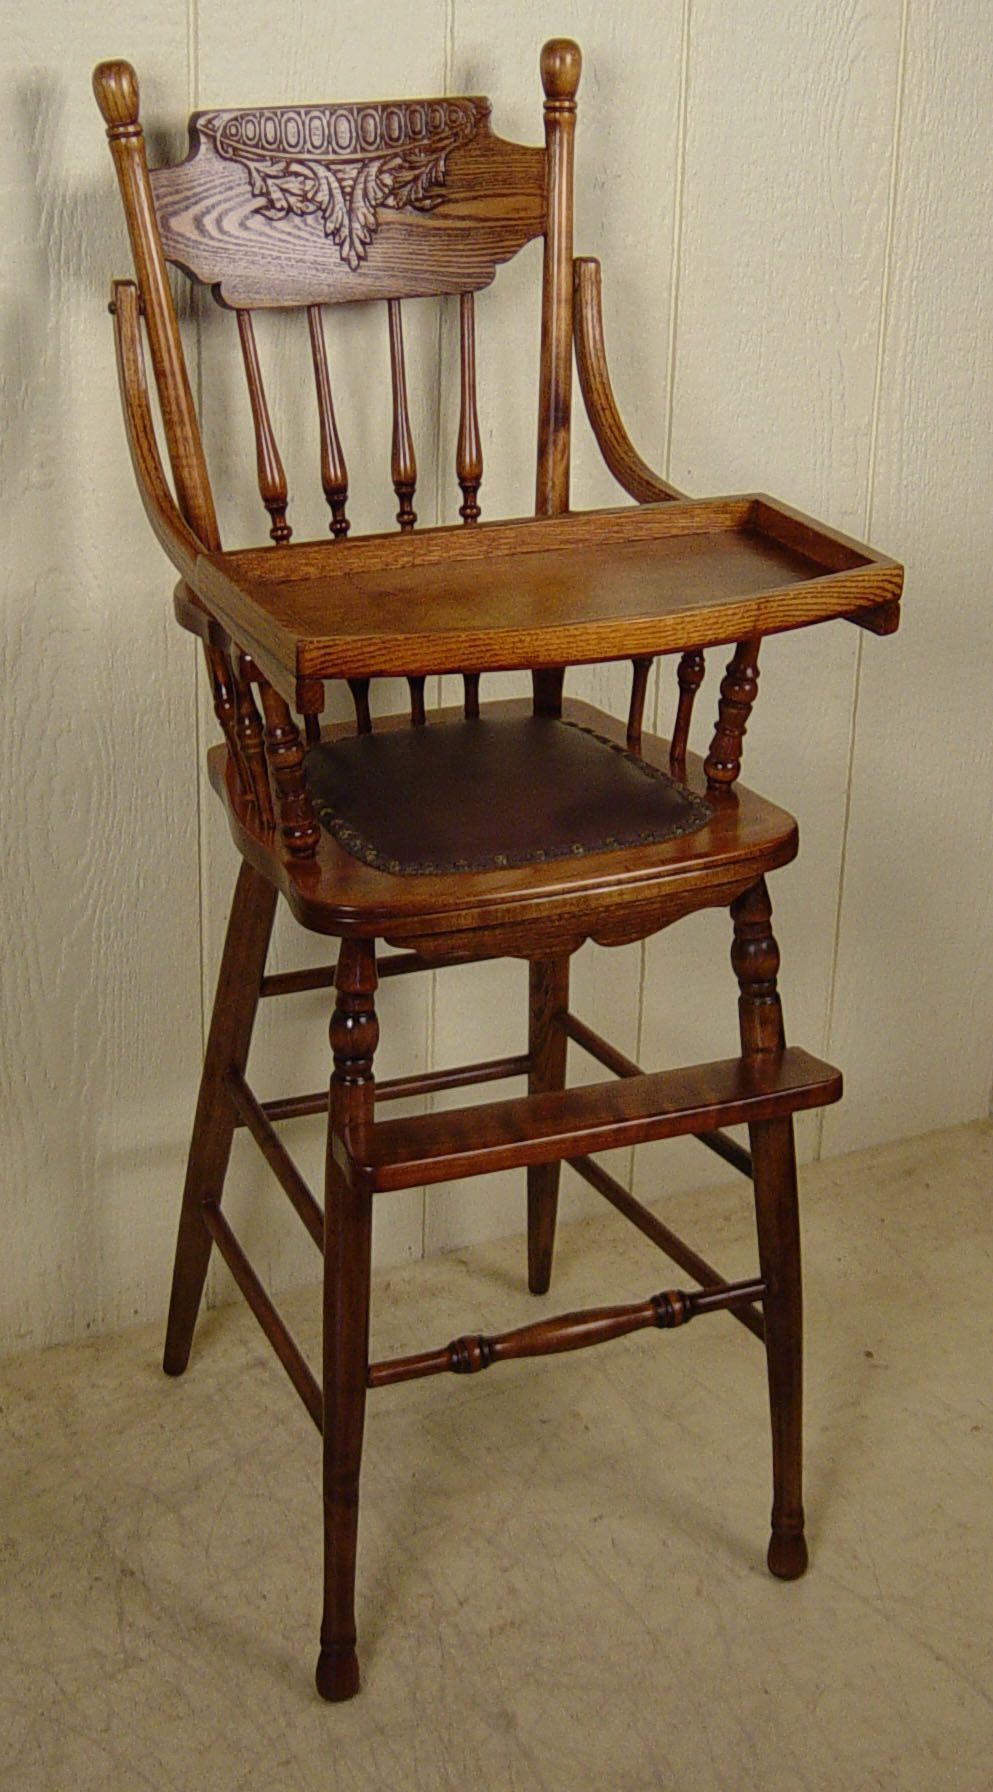 Childs high chair with images antique high chairs